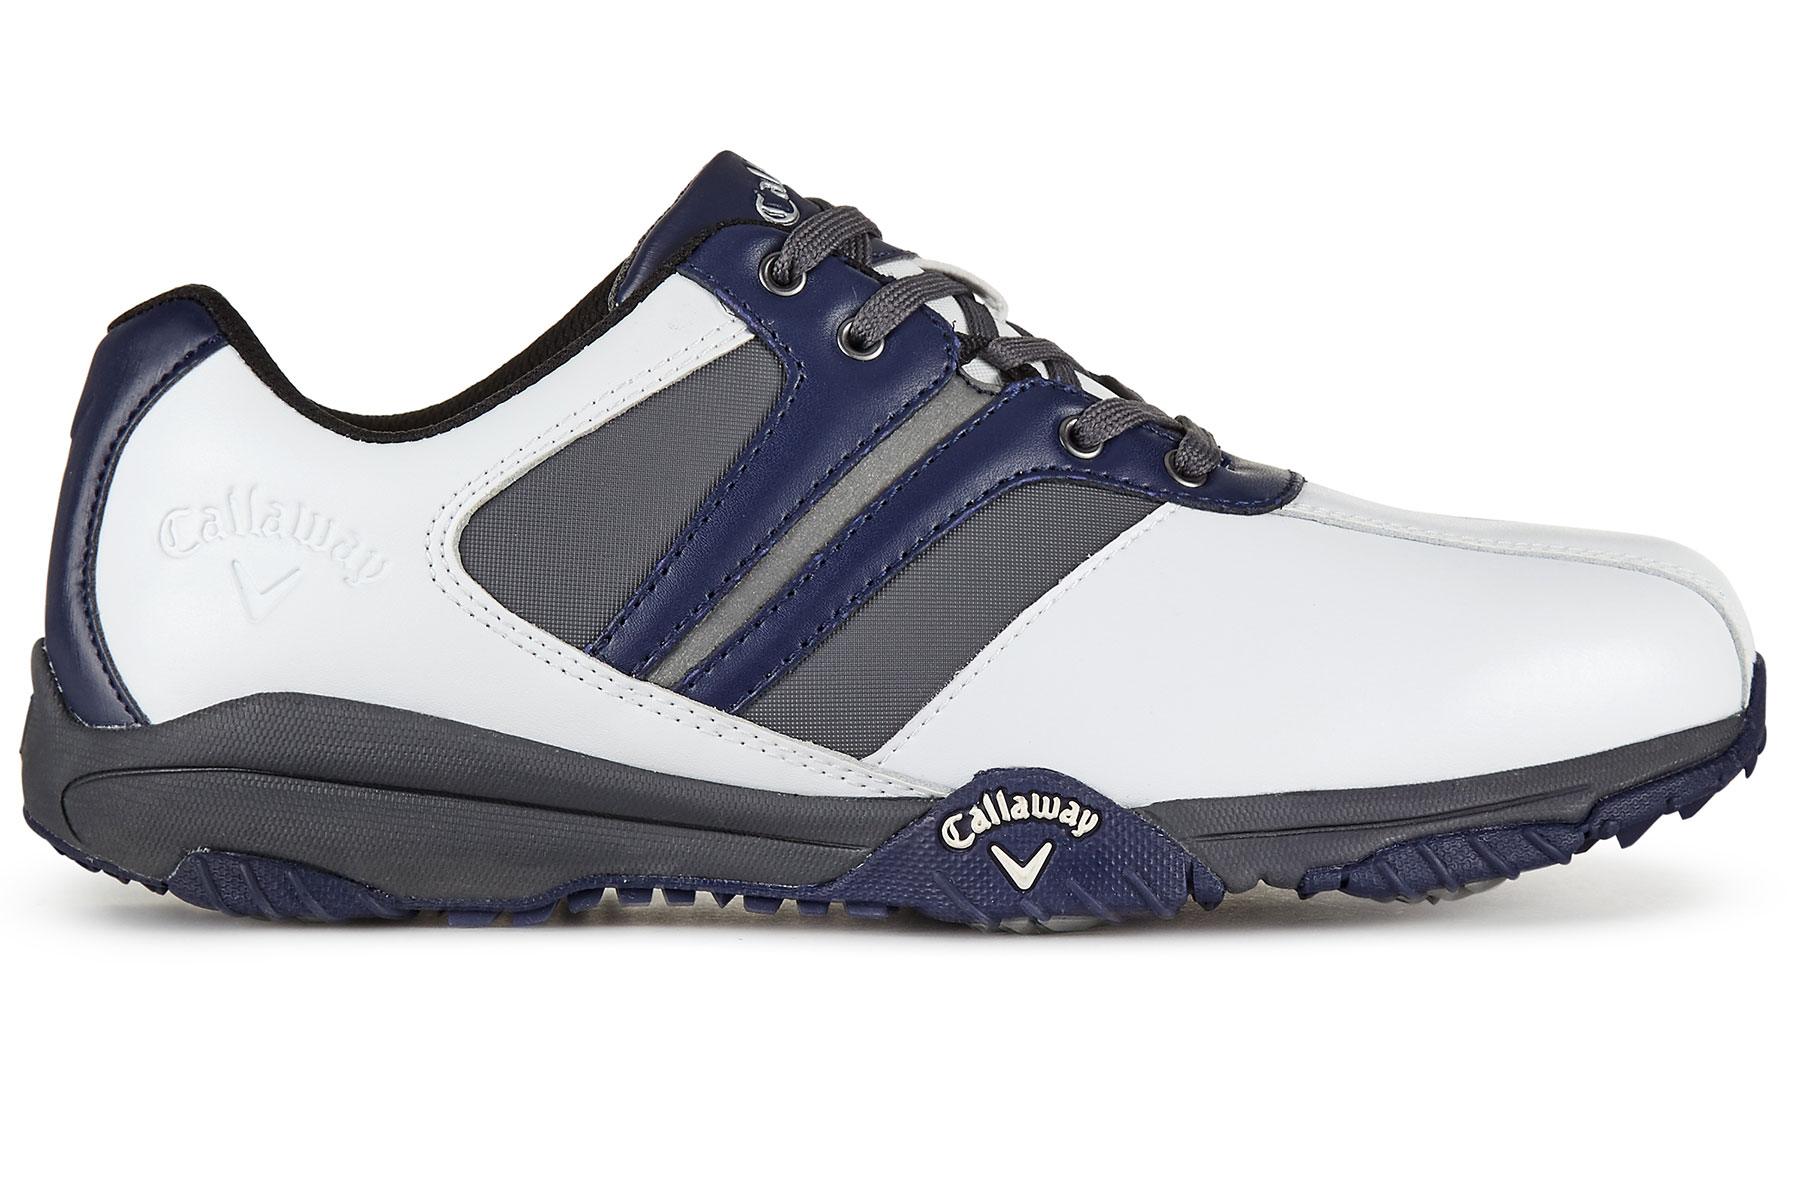 Callaway Golf Chev Comfort Golf Shoes